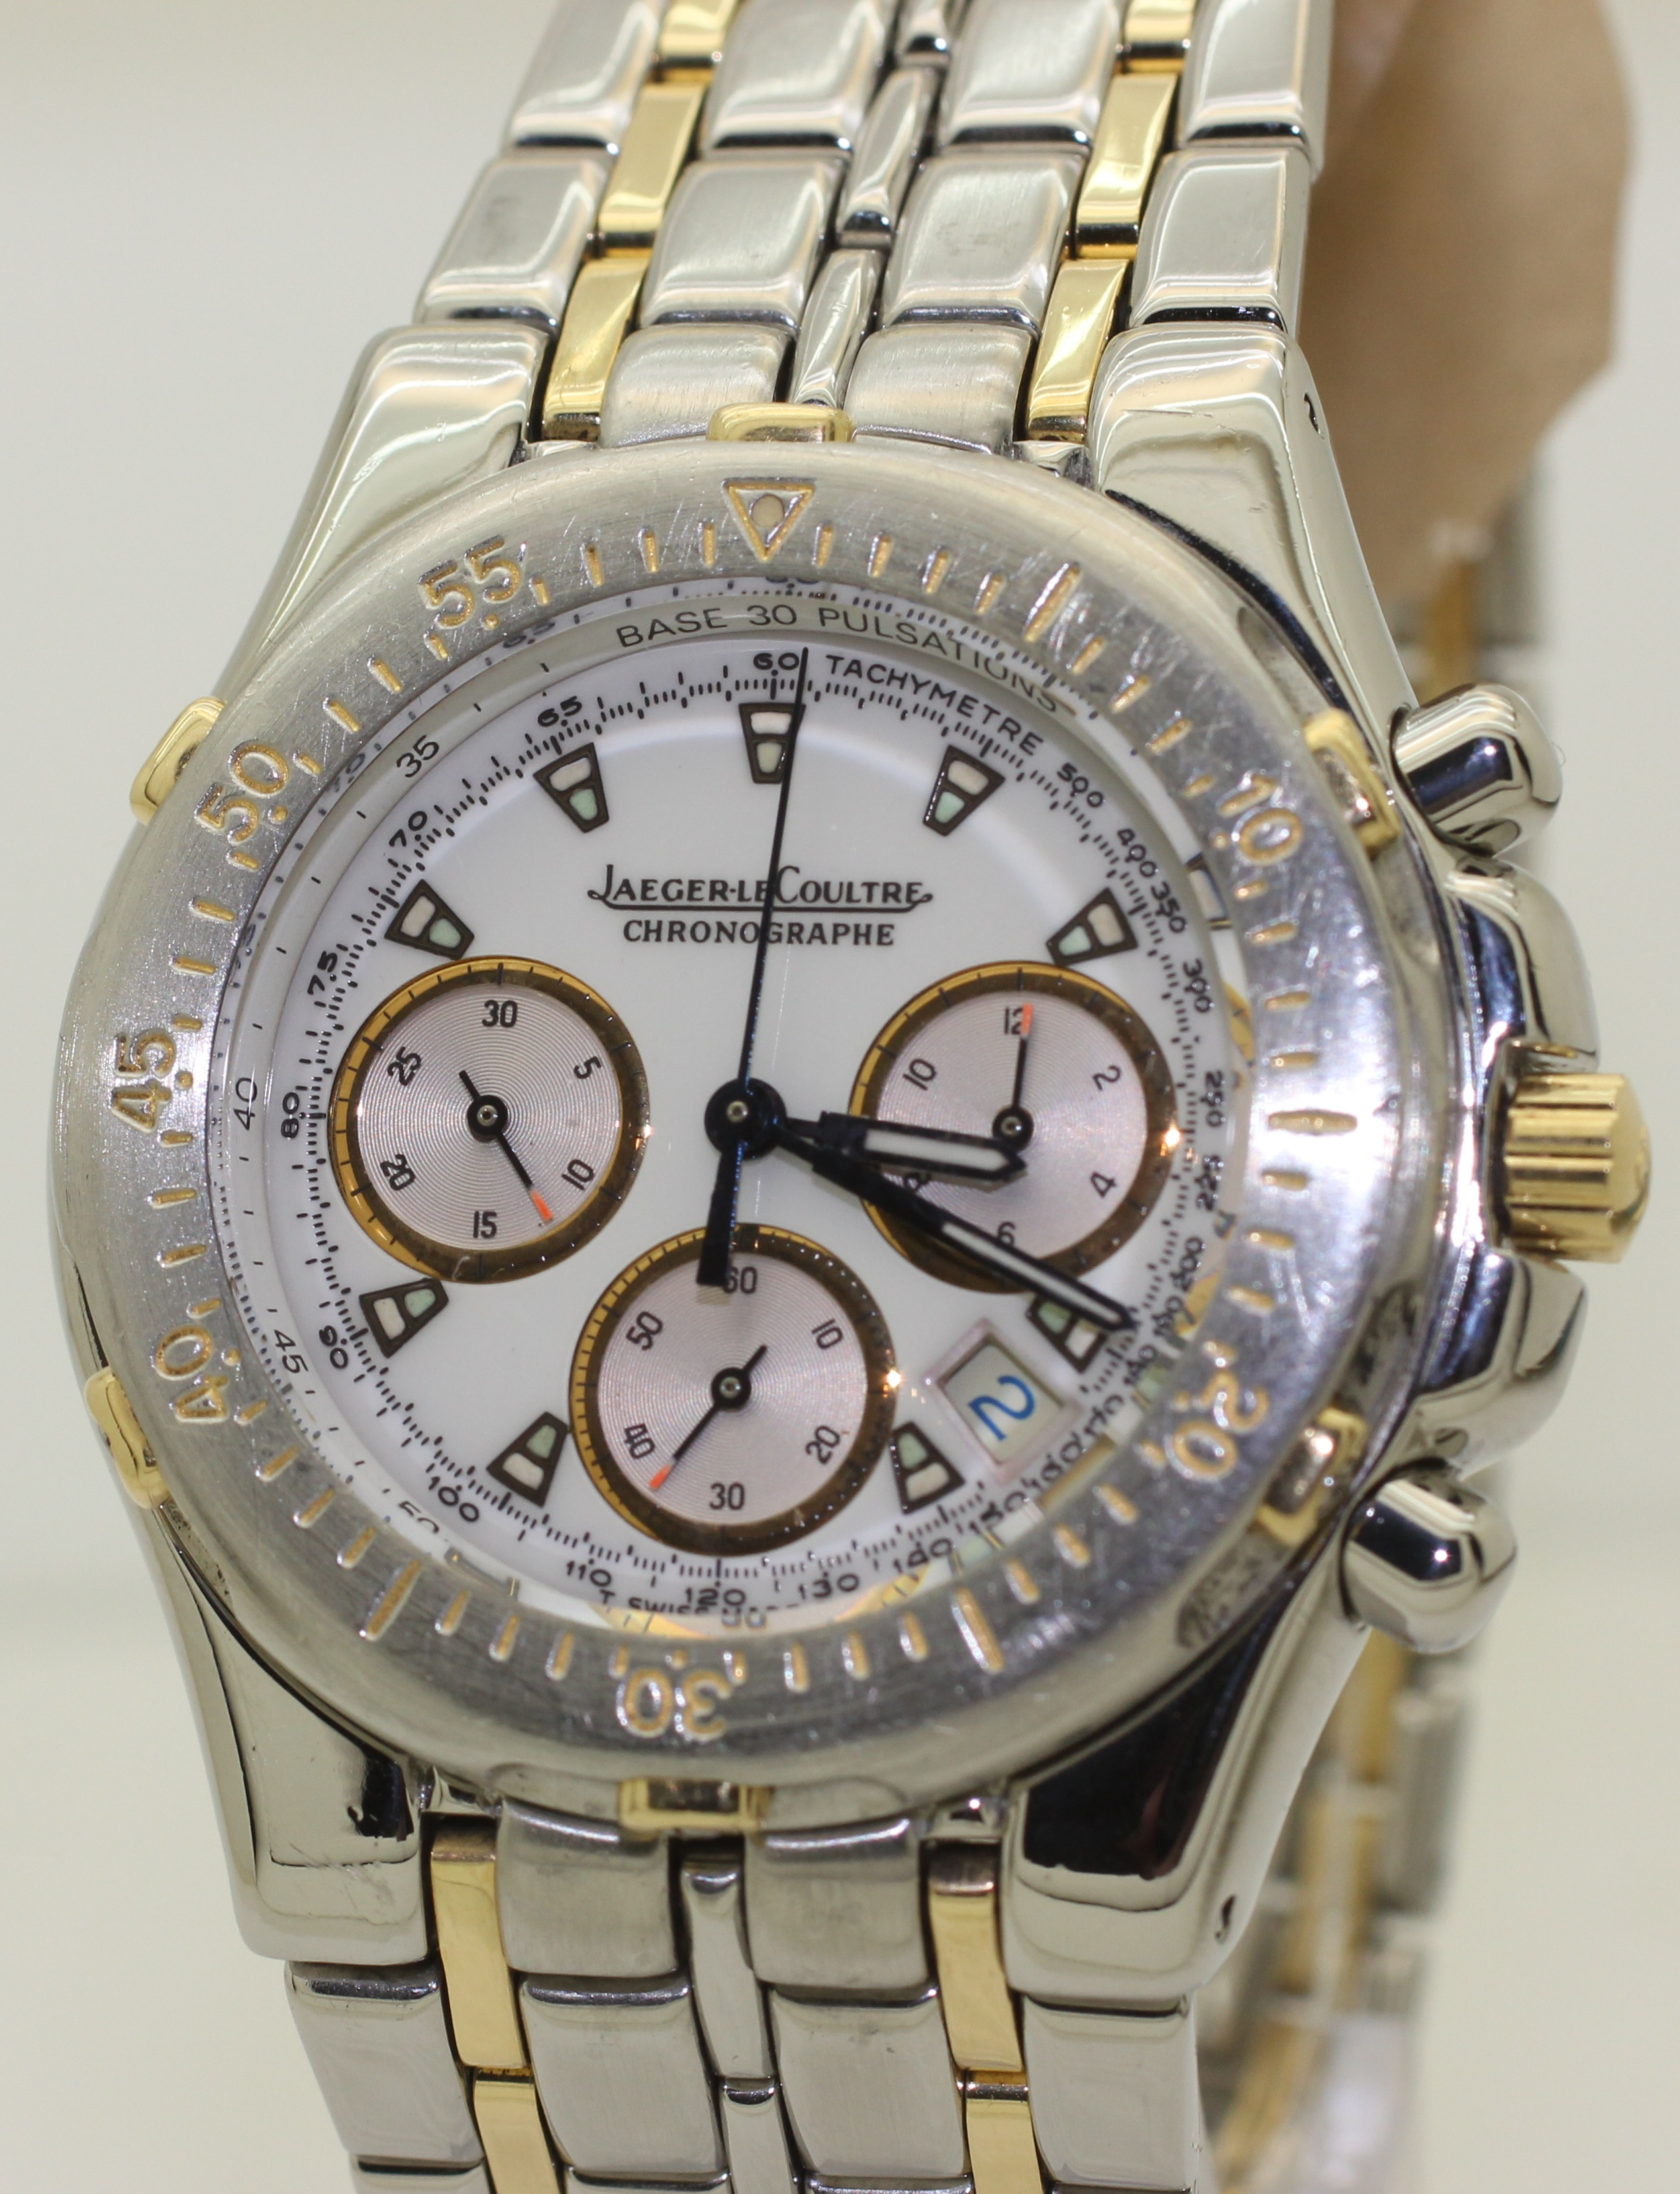 Stainless Steel and 18K Gold Jaeger le Coultre Kryos Chronograph 305.5.31 37mm